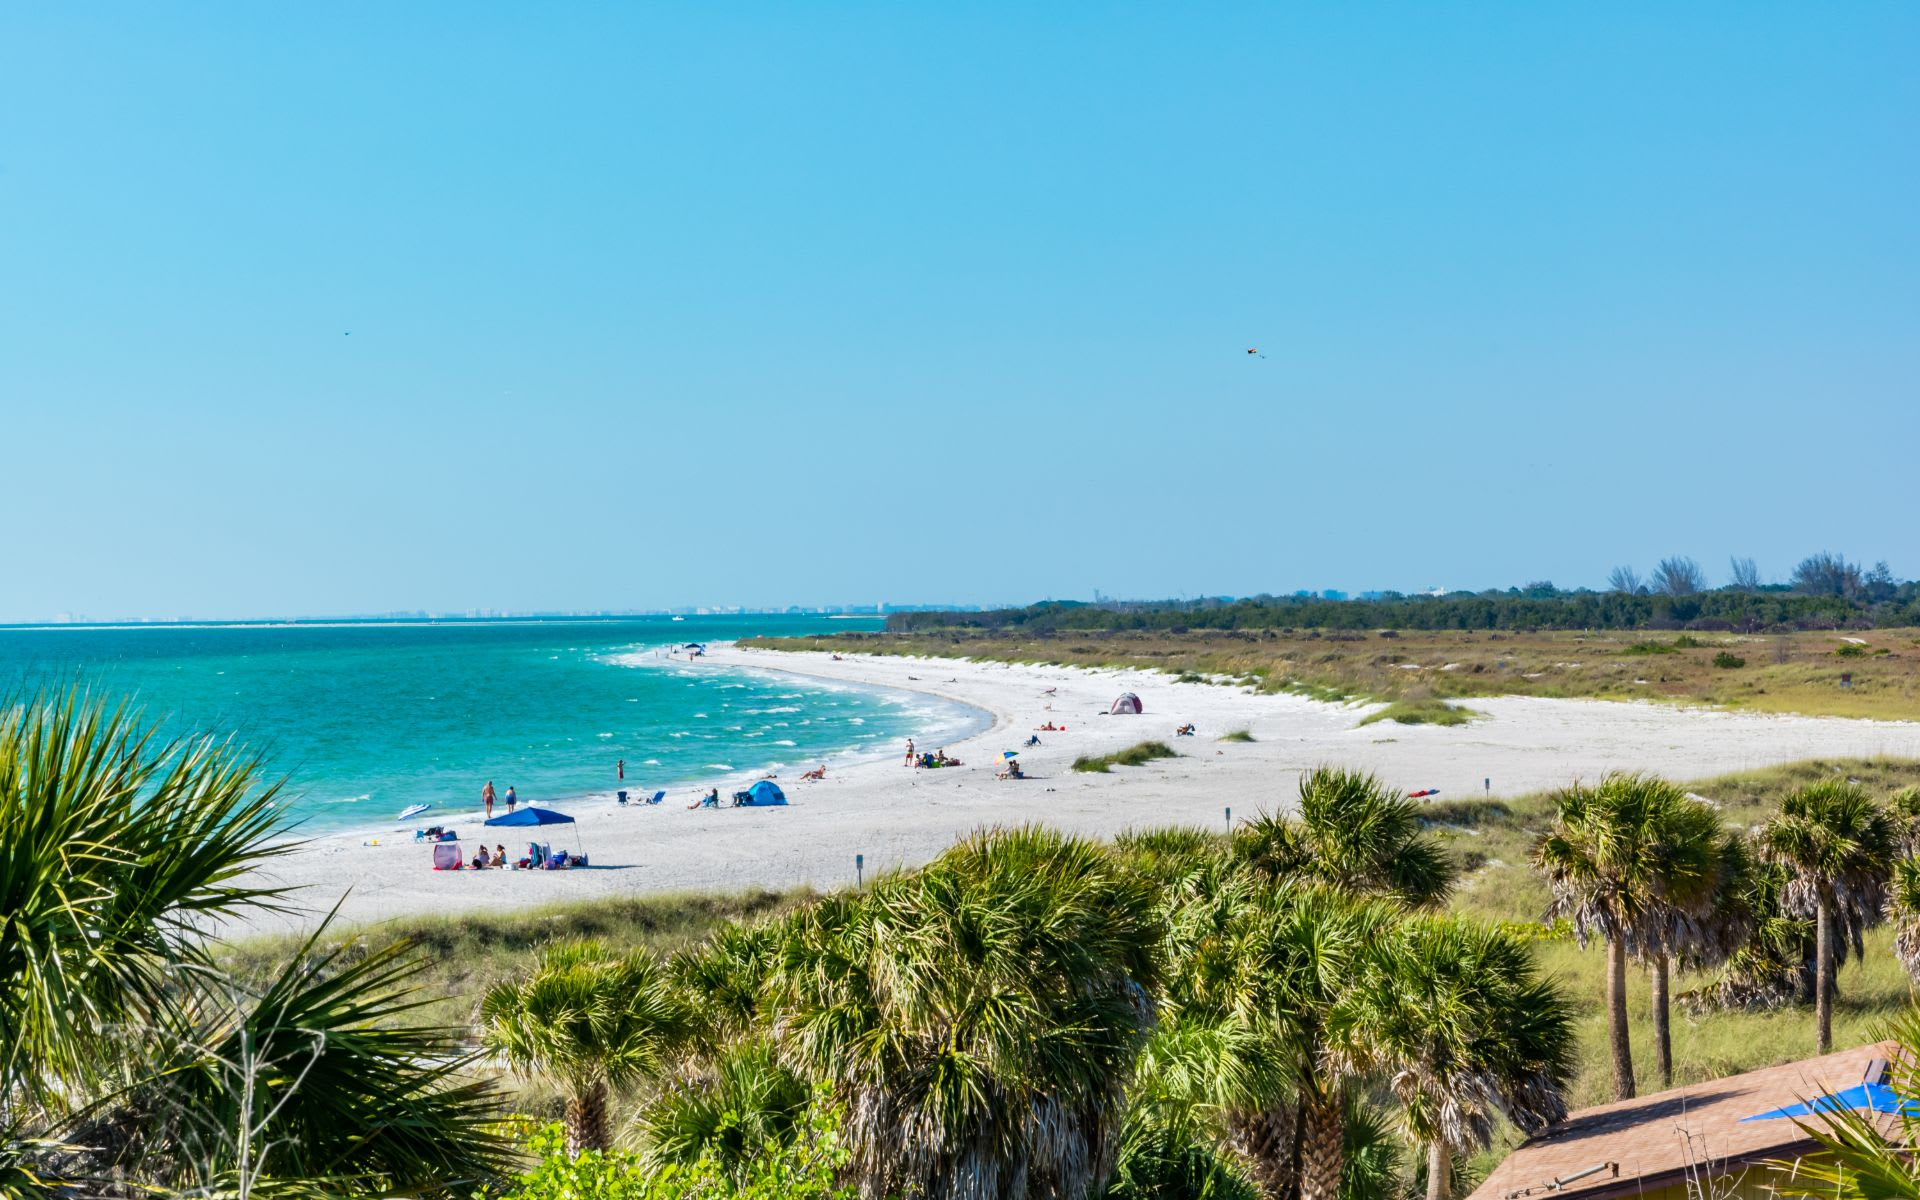 Tampa Bay beaches named best in the US and world by Tripadvisor